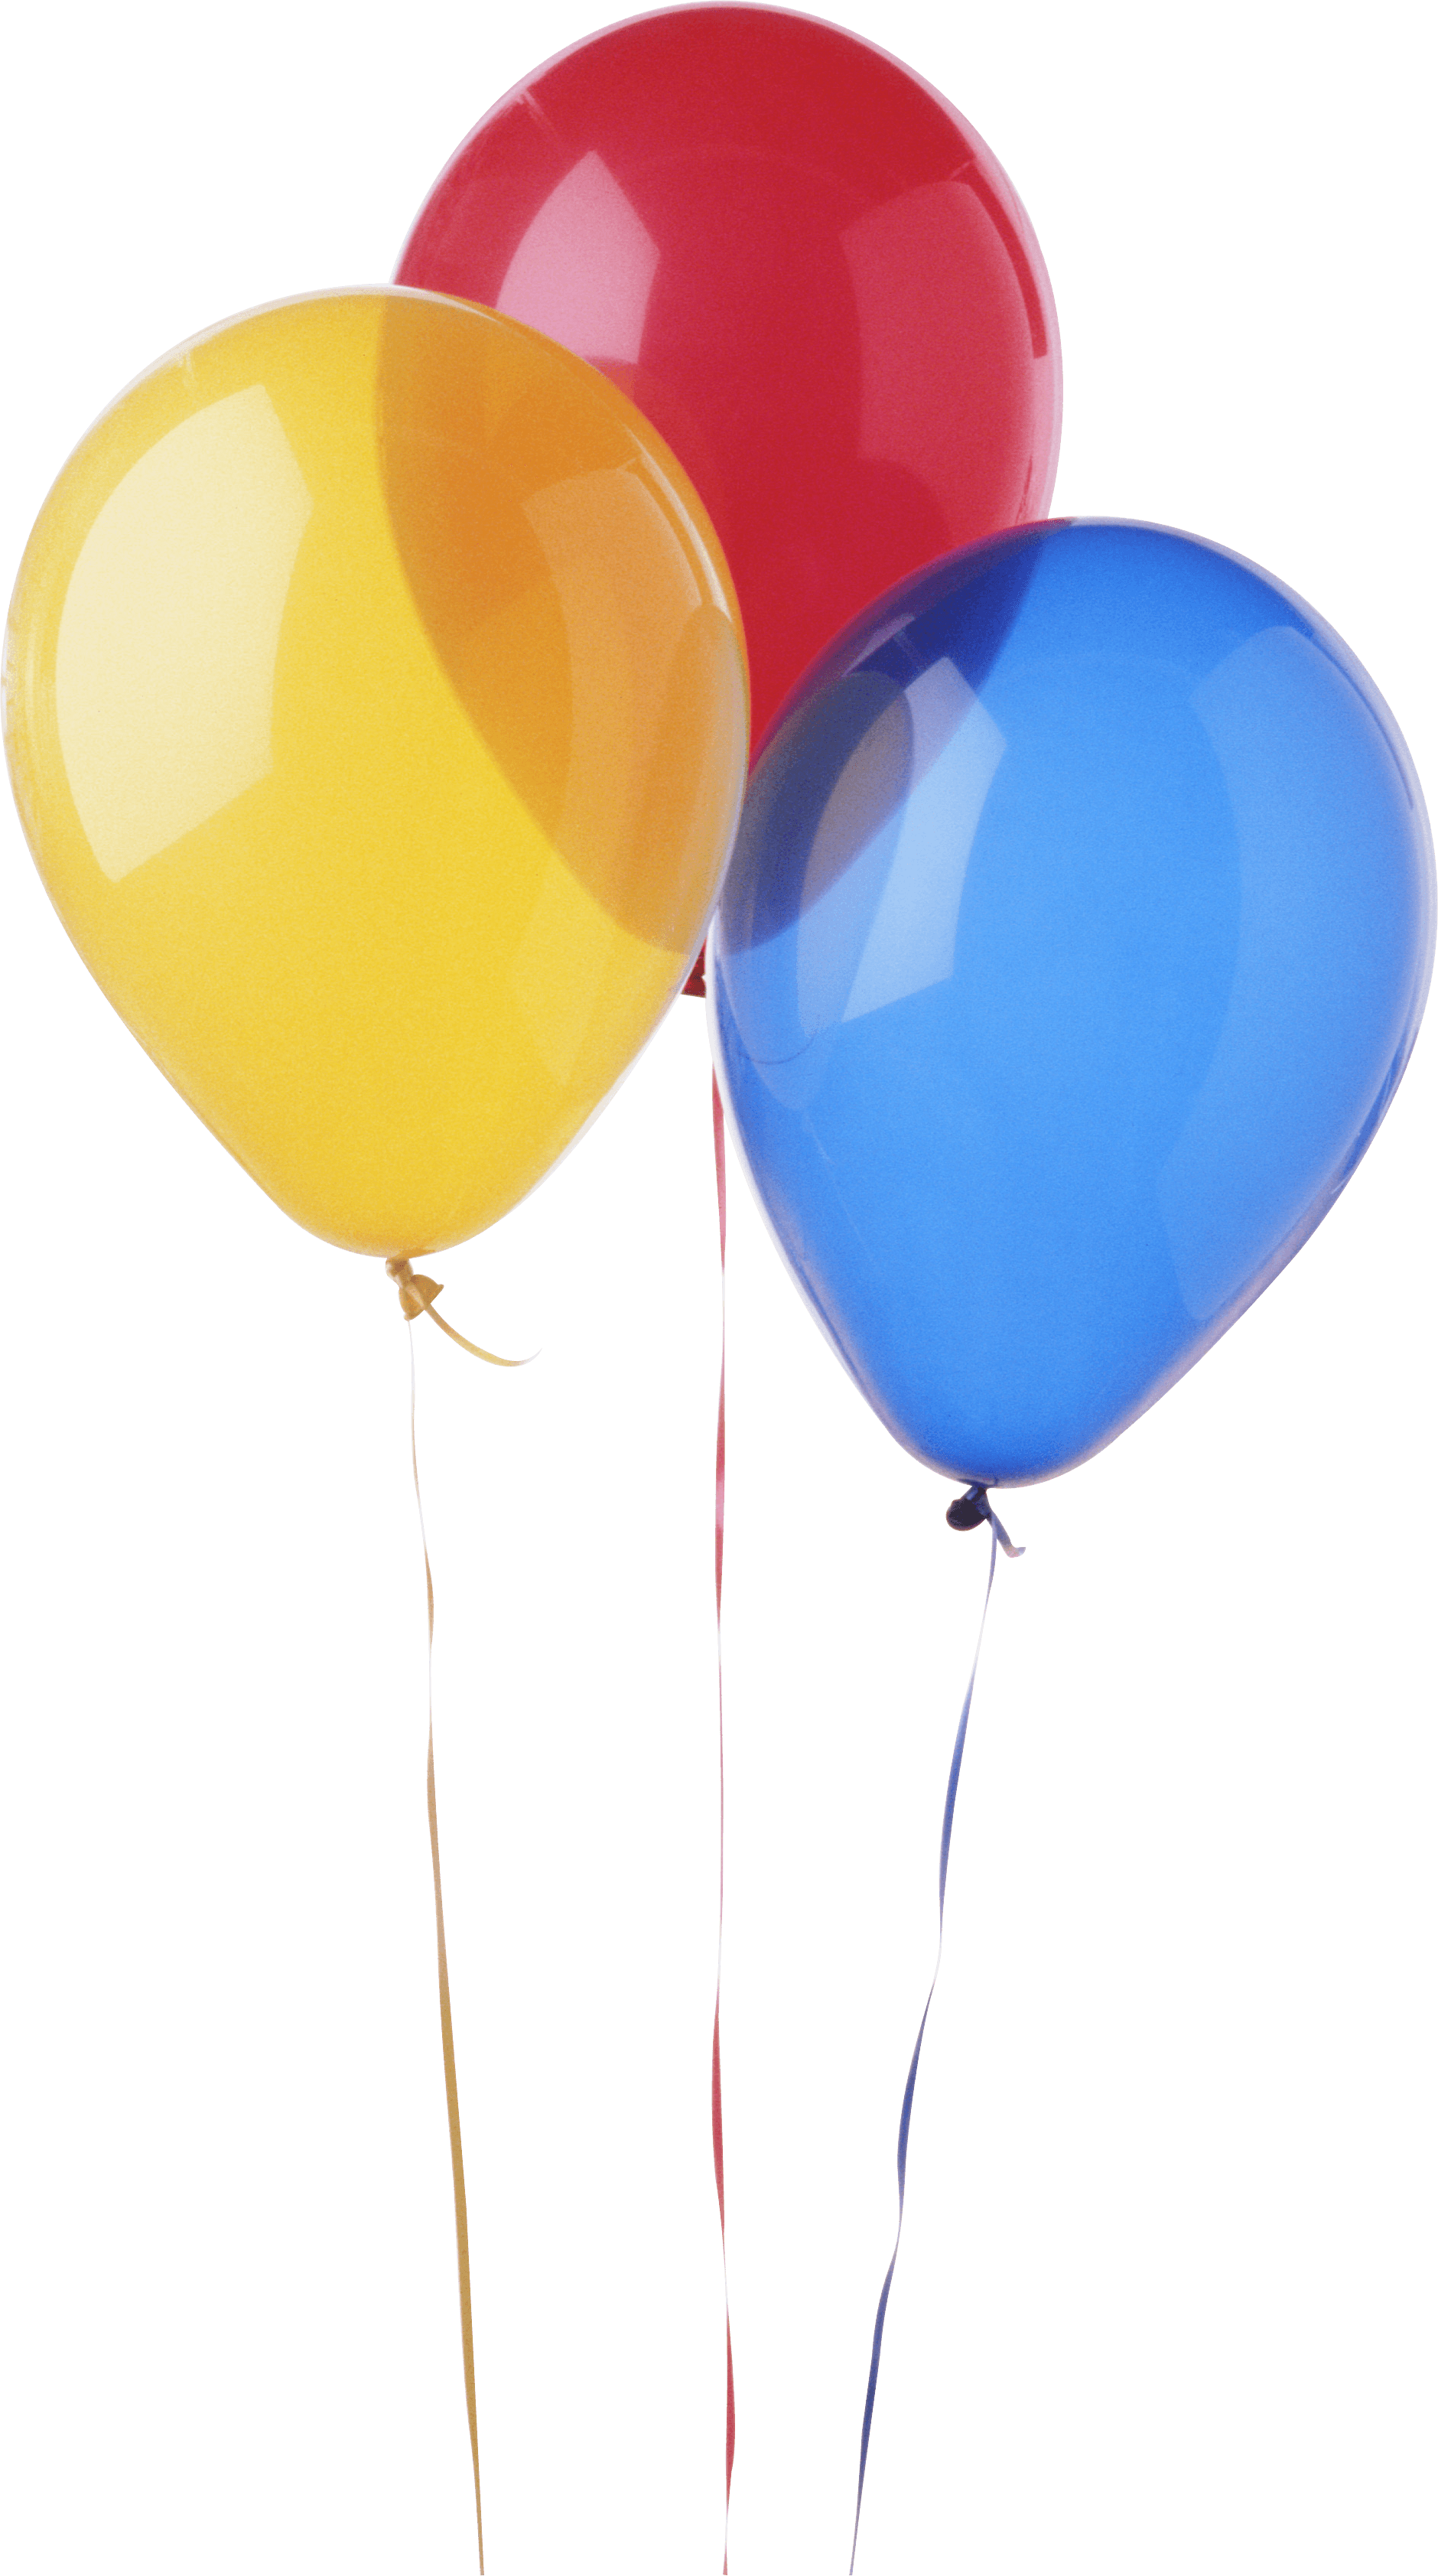 Balloons Png Image PNG Image